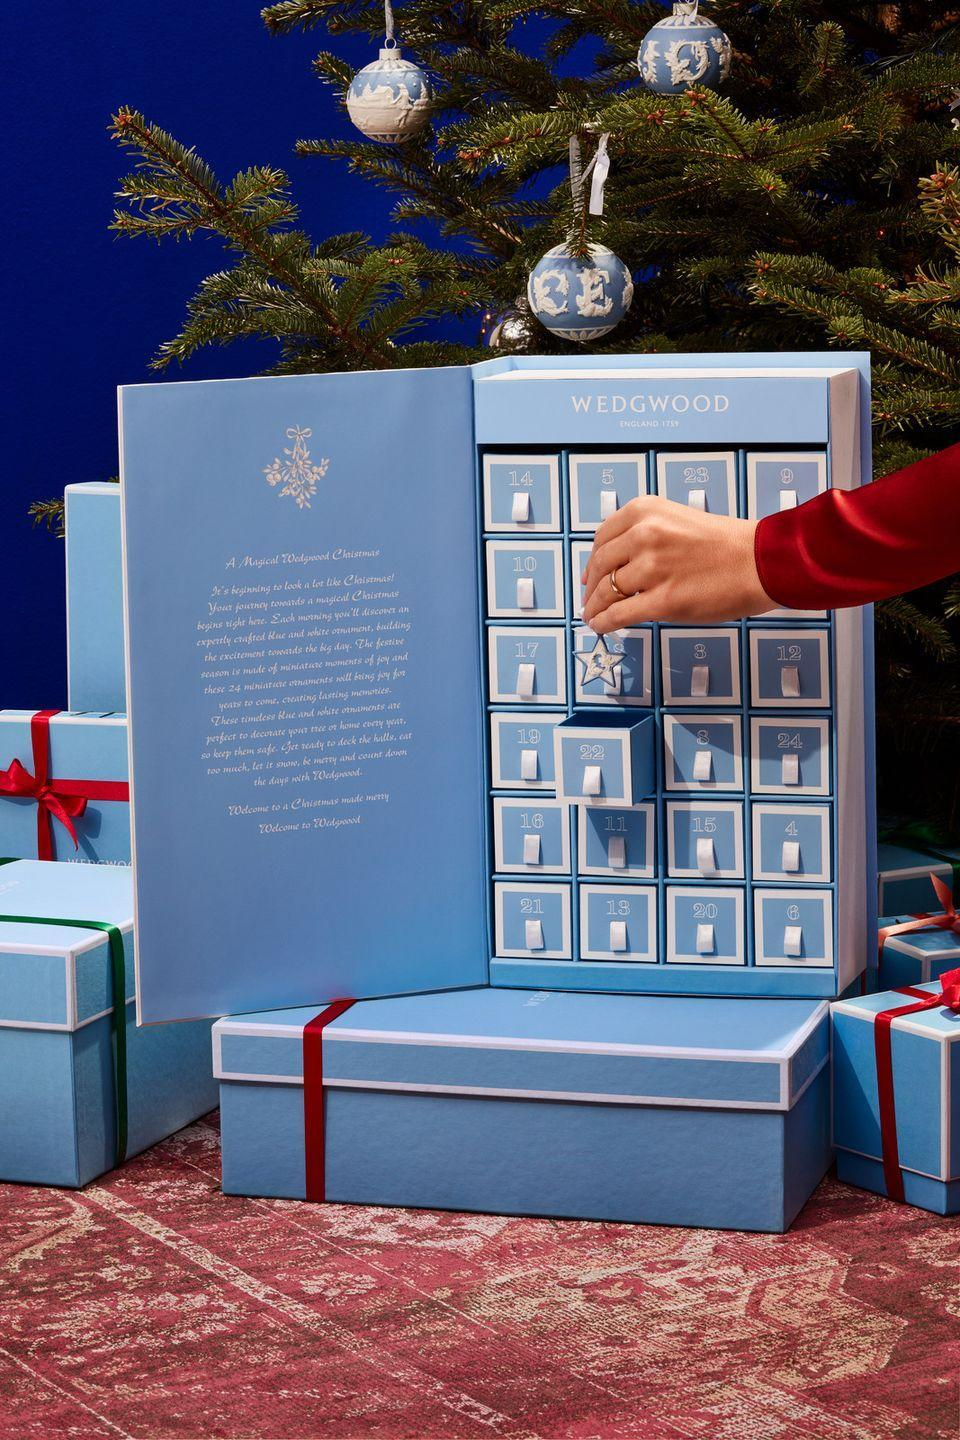 """<p>This advent calendar from heritage British pottery house Wedgwood is a far cry from cheap festive chocolate. Behind each box is an exquisite porcelain tree decoration in signature blue and white, strung with a white satin ribbon. Mini replicas of some of its most iconic designs are seriously special – think lilliputian-esque versions of the 'Jasper Portland Vase' and 'Venus Bust', plus dinky teapots and traditional coffee pots. £650, <a href=""""https://www.wedgwood.com/en-gb/home-decor/decorative-accessories/christmas-decorations/christmas-2020-advent-calendar-book-1051625"""" rel=""""nofollow noopener"""" target=""""_blank"""" data-ylk=""""slk:wedgwood.com"""" class=""""link rapid-noclick-resp"""">wedgwood.com</a></p>"""